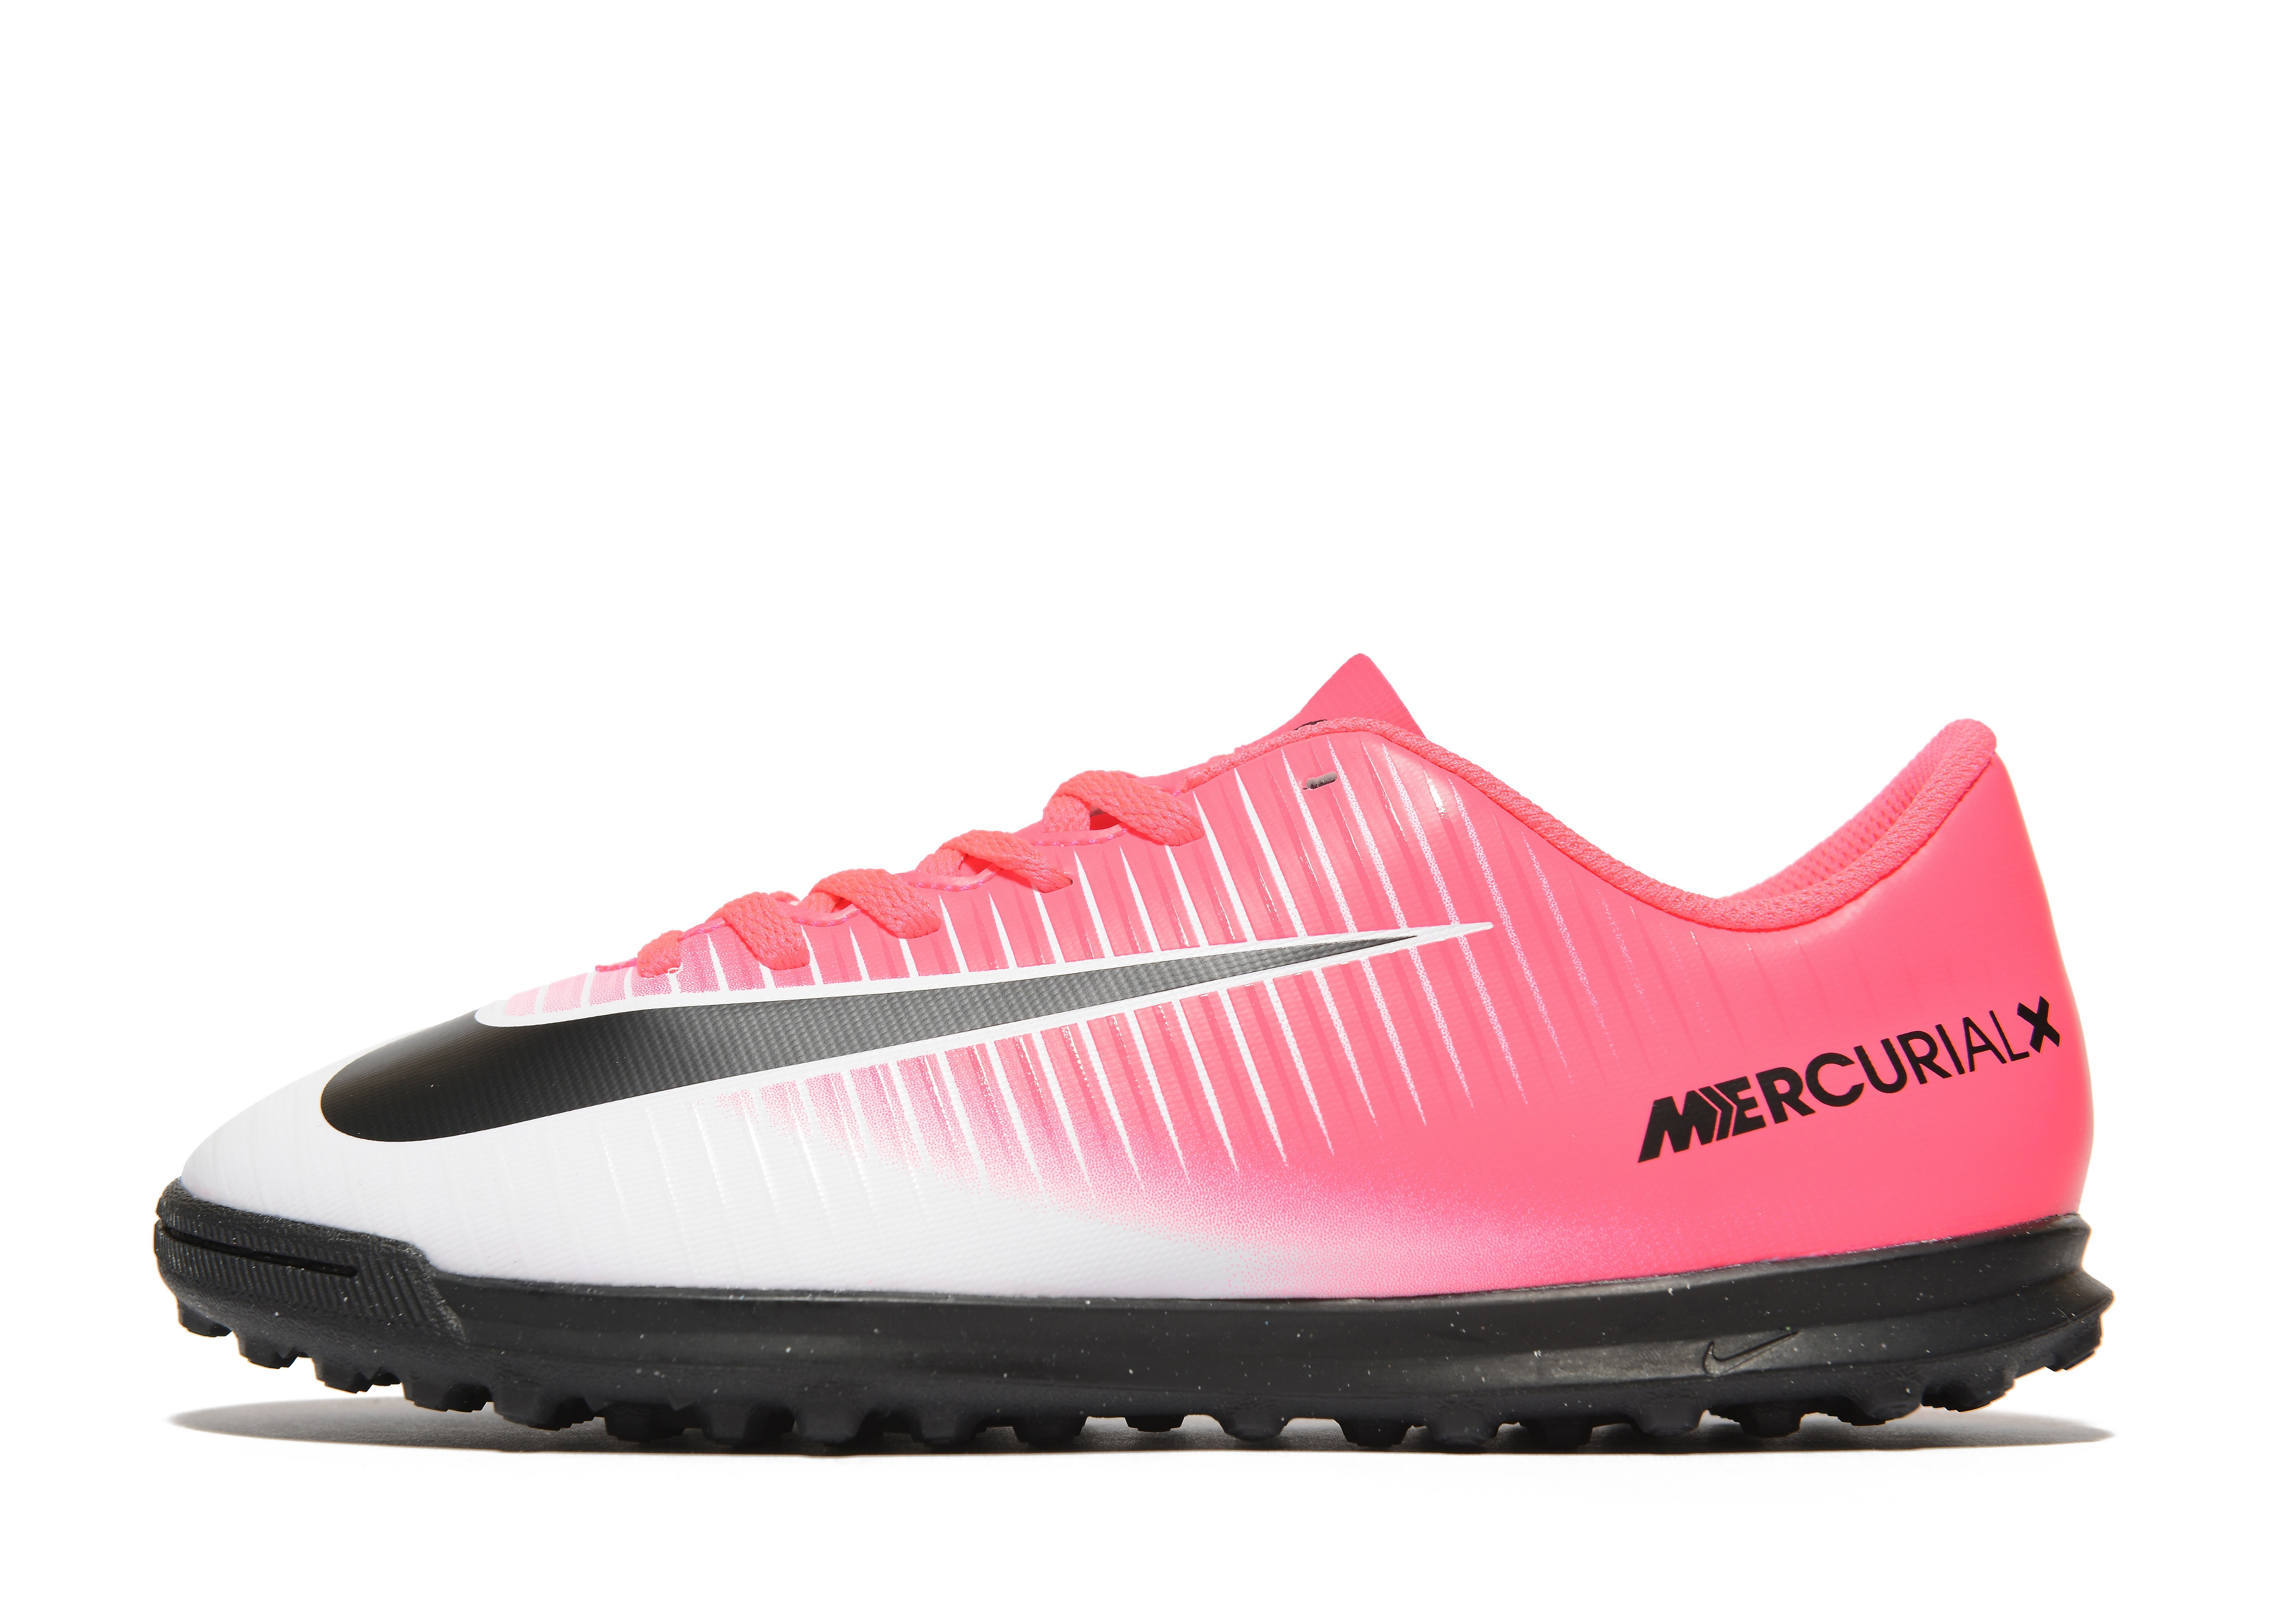 Nike Motion Blur Mercurial Vortex Turf Junior